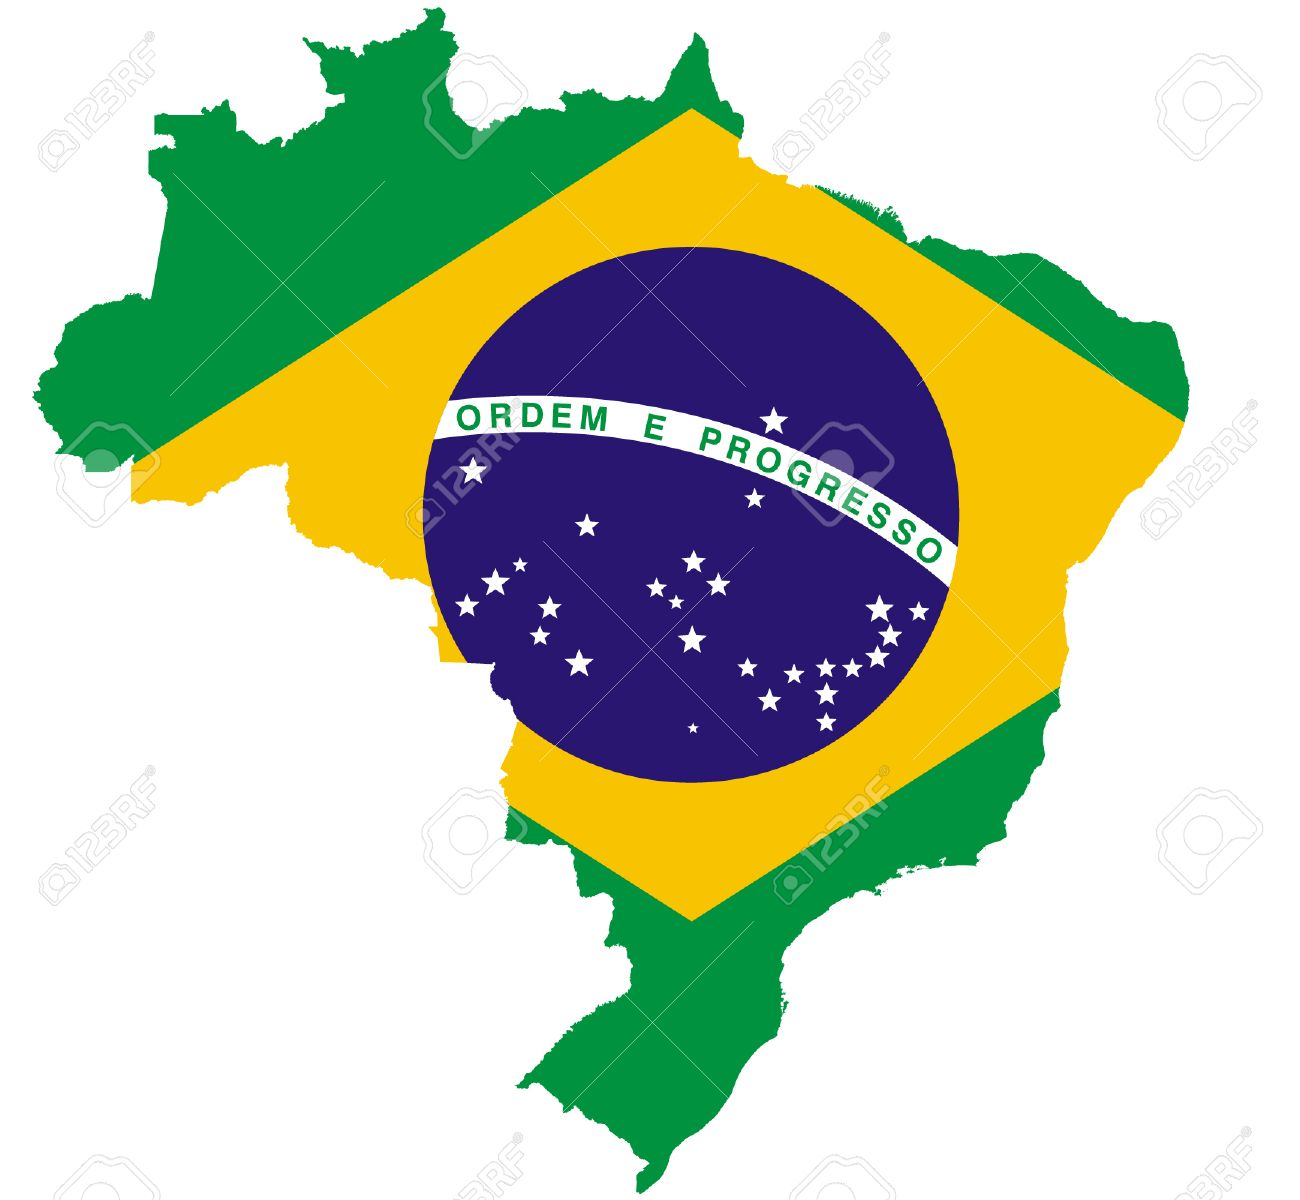 Brazil Map And Flag Royalty Free Cliparts Vectors And Stock - Brazil map illustration